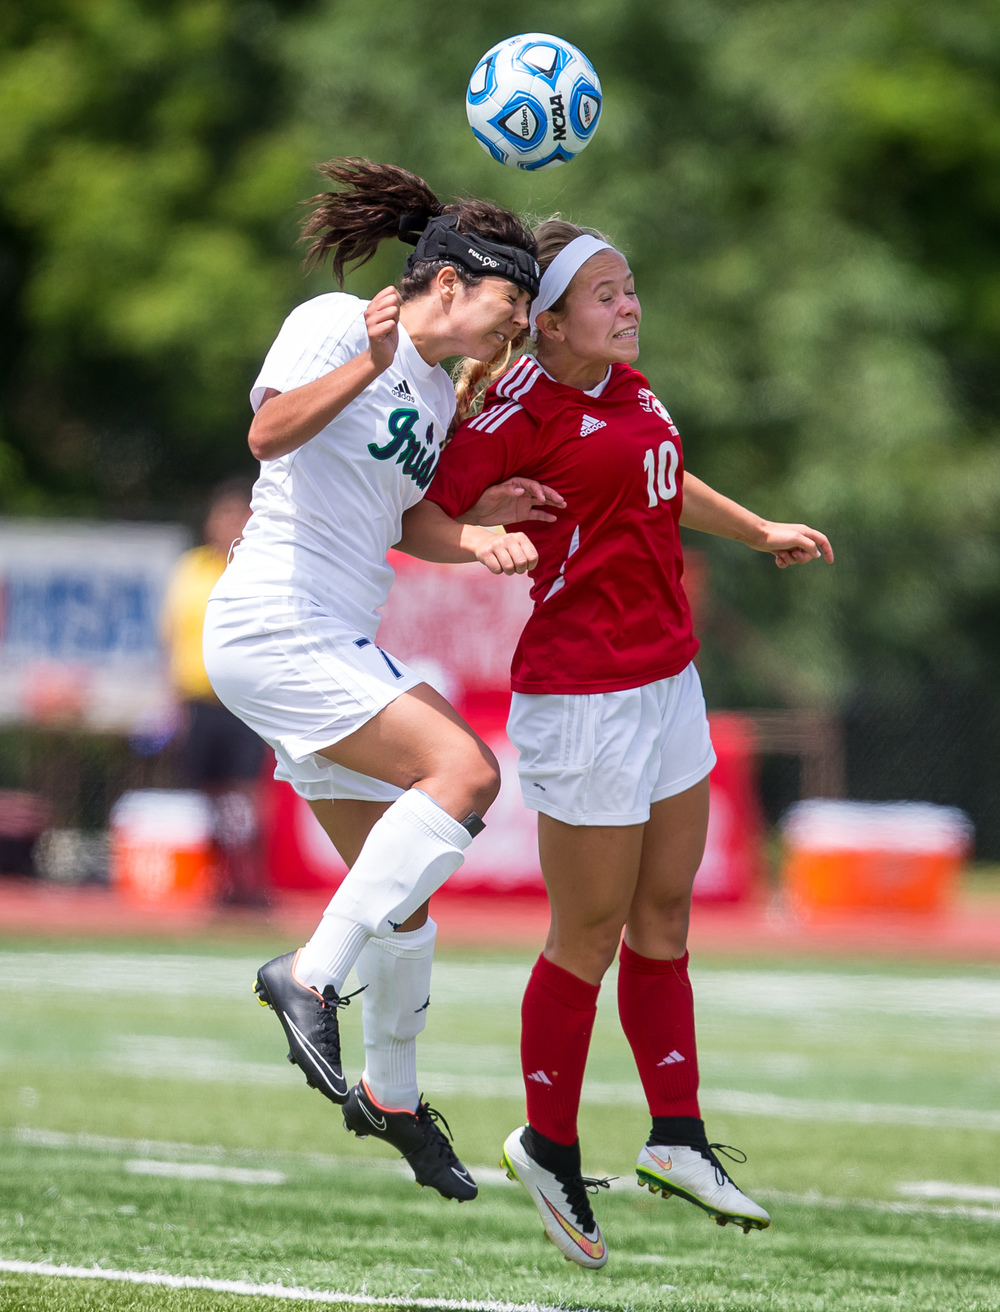 Glenwood's Kelly Graves (10) goes for a header against Peoria Notre Dame's Elizabeth Shealy (7) in the second half during the IHSA Class 2A Girls State Soccer Semifinals at North Central College, Friday, June 5, 2015, in Naperville, Ill. Justin L. Fowler/The State Journal-Register